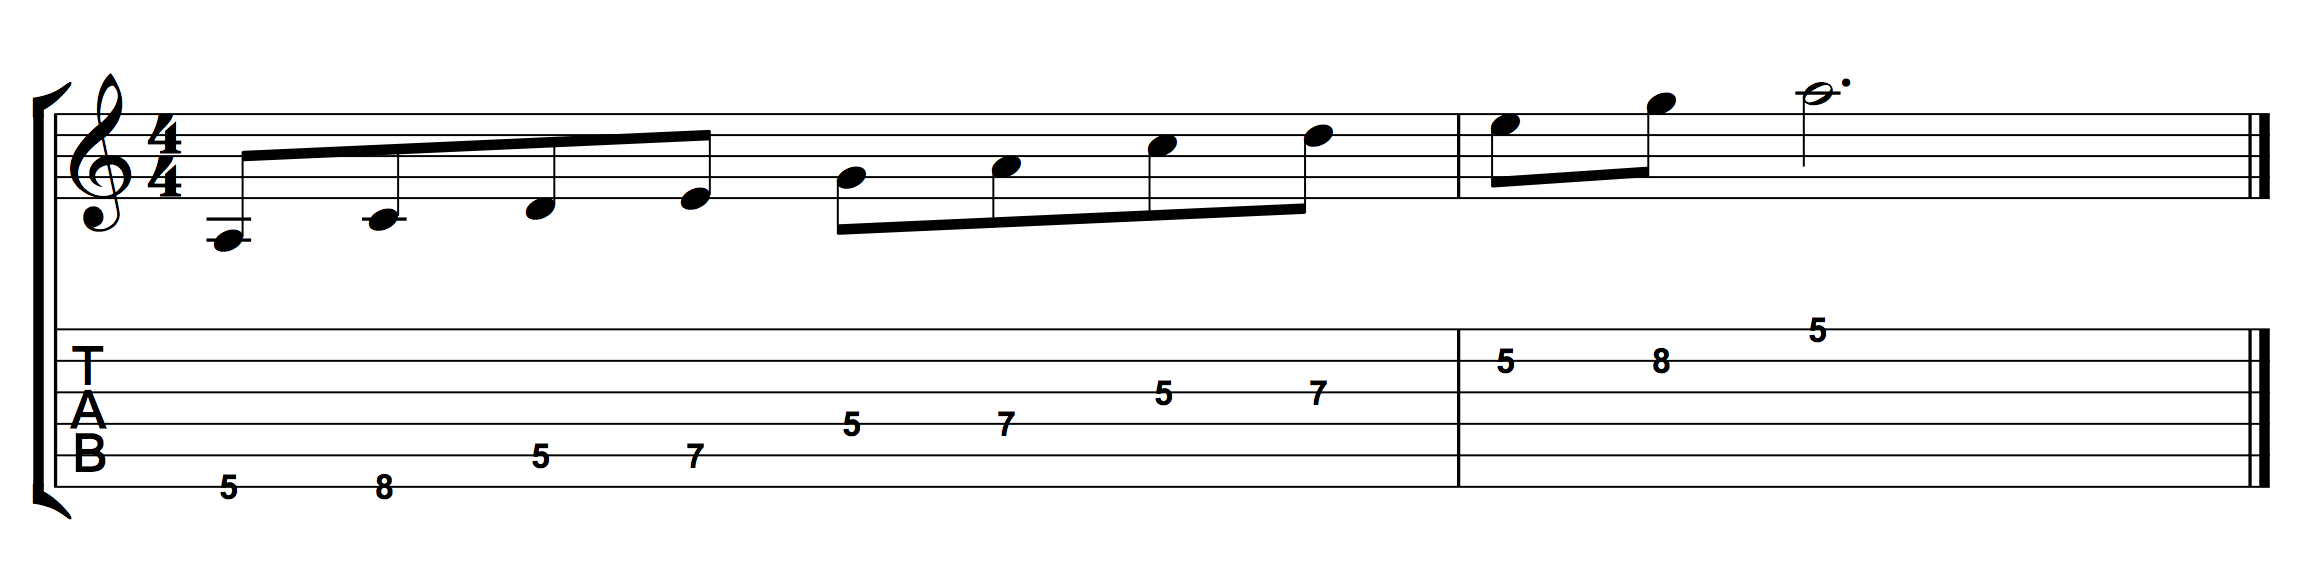 How To Improvise When You Never Have Online Guitar Books